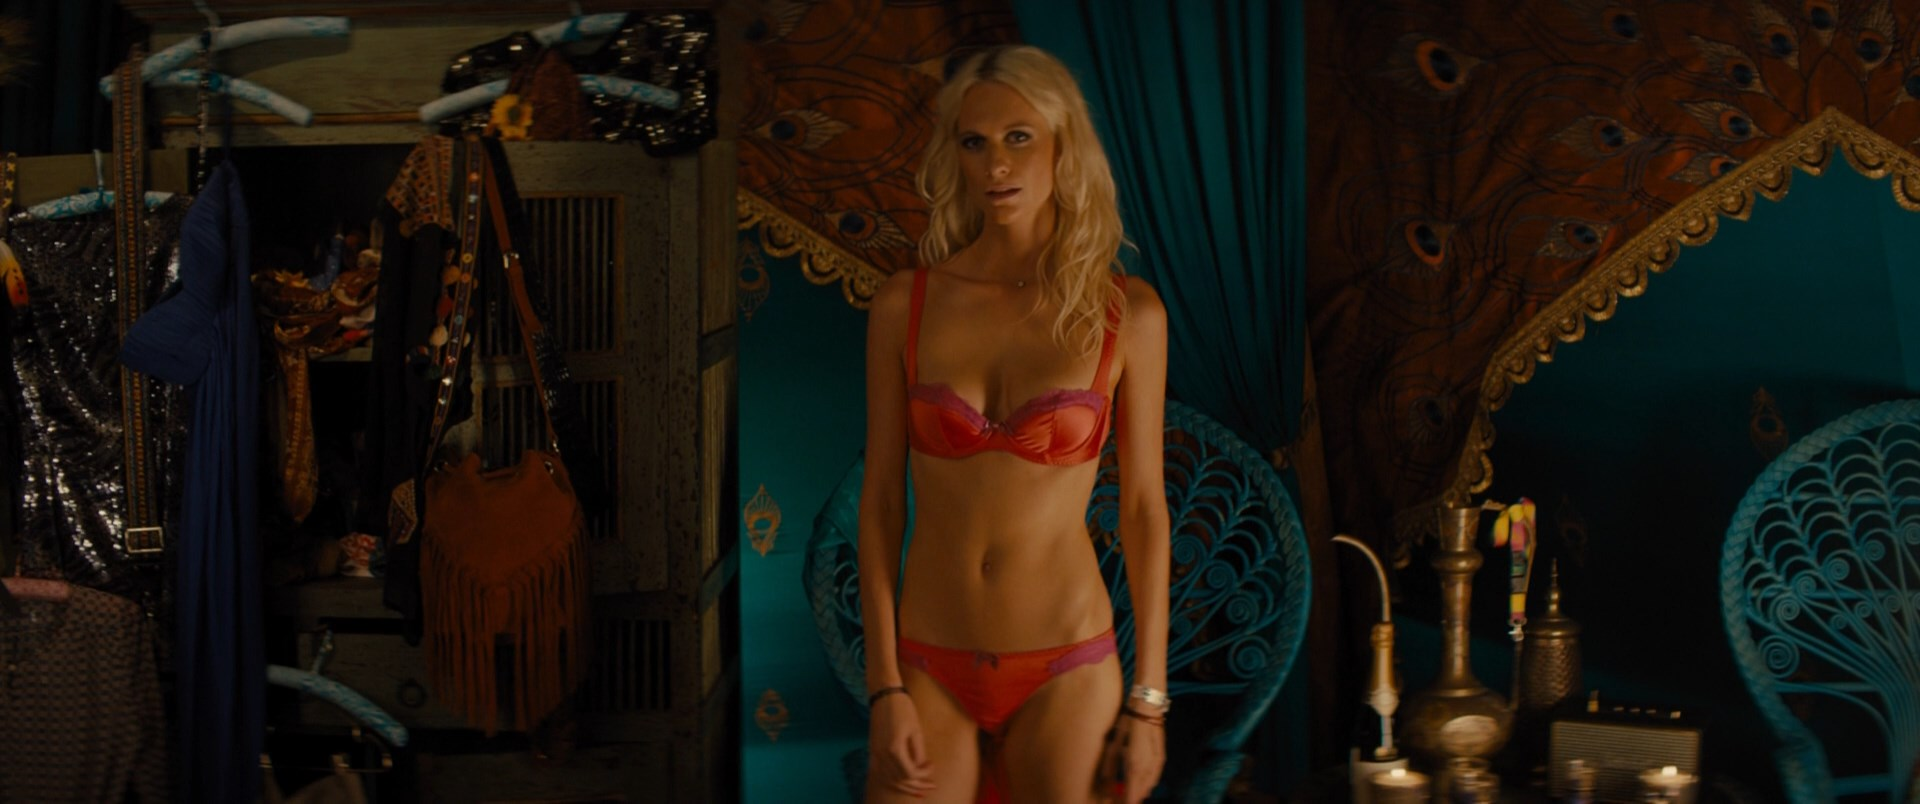 Poppy Delevinge sexy - Kingsman The Golden Circle (2017)